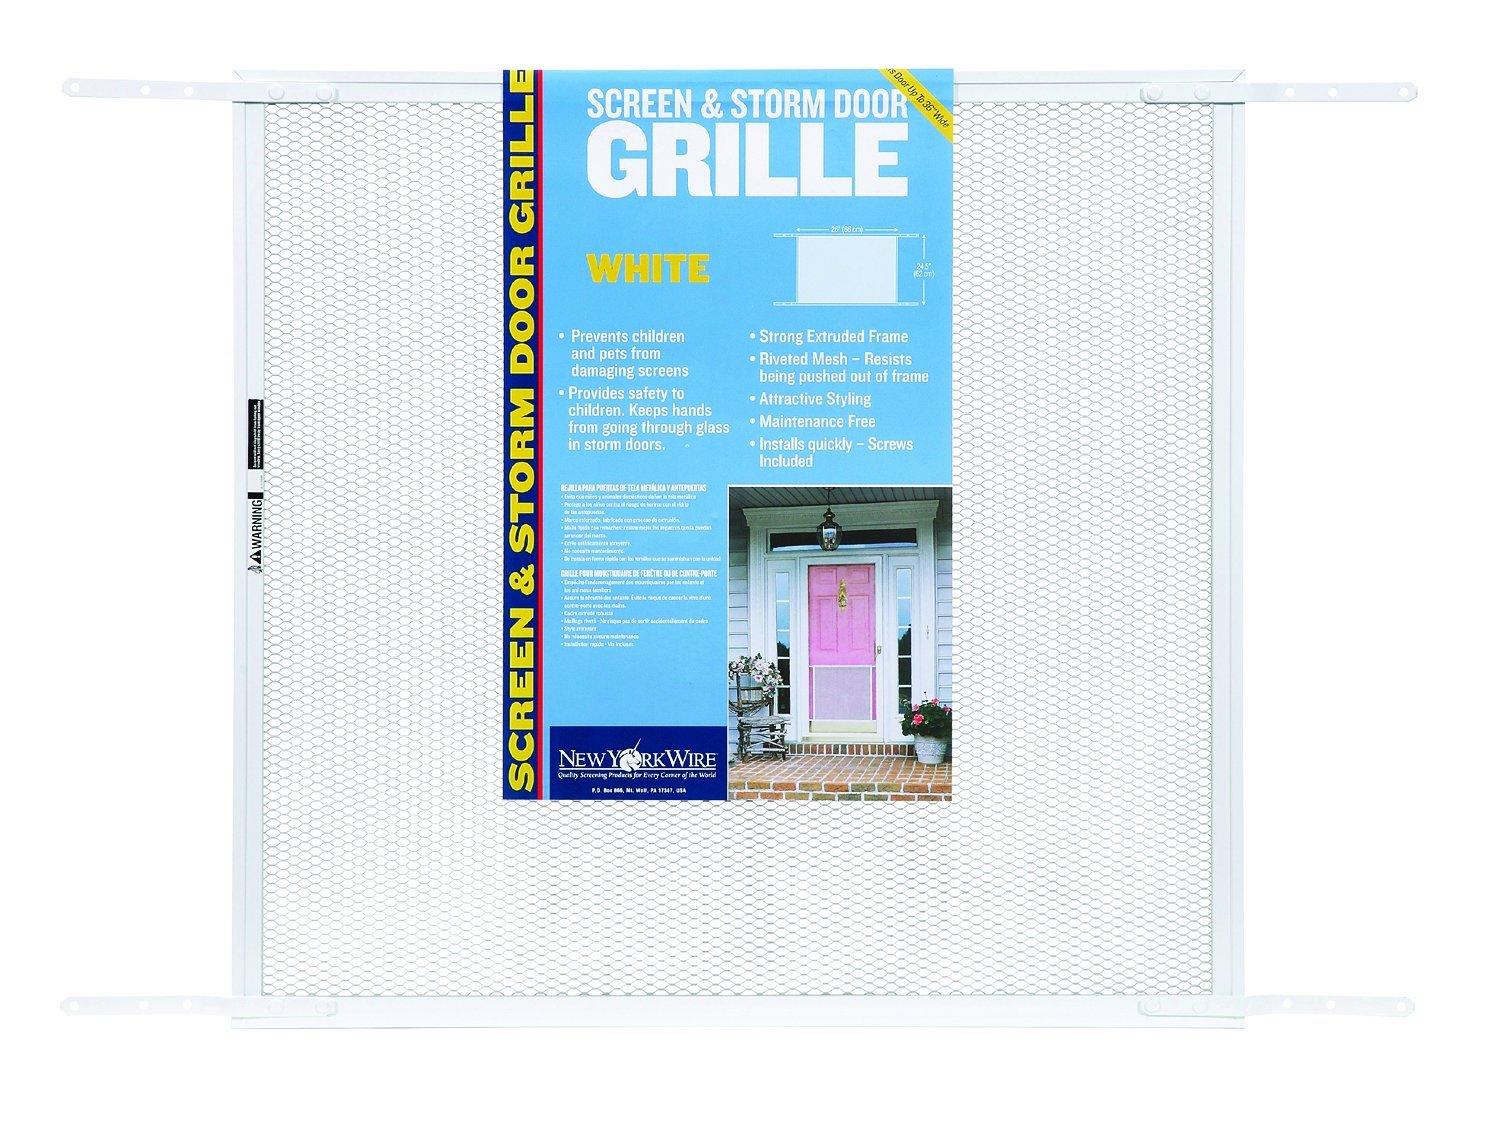 ADFORS Screen & Storm Door Grille, 24'' x 26'' x 34'', White